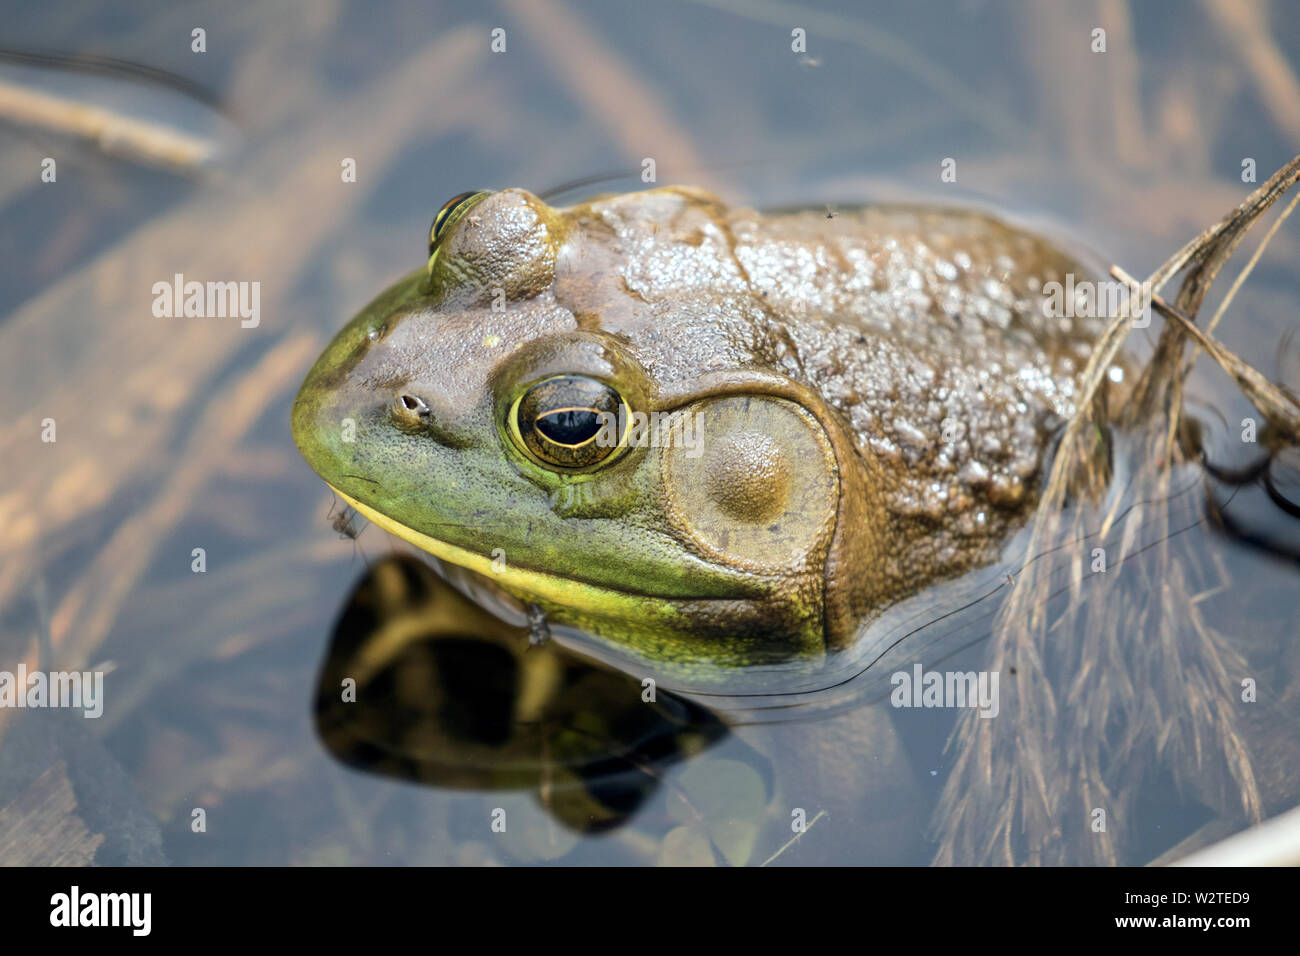 Closeup of male American Bullfrog in pond,Ontario,Canada.Scientific name of this frog is Lithobates catesbeianus. Stock Photo